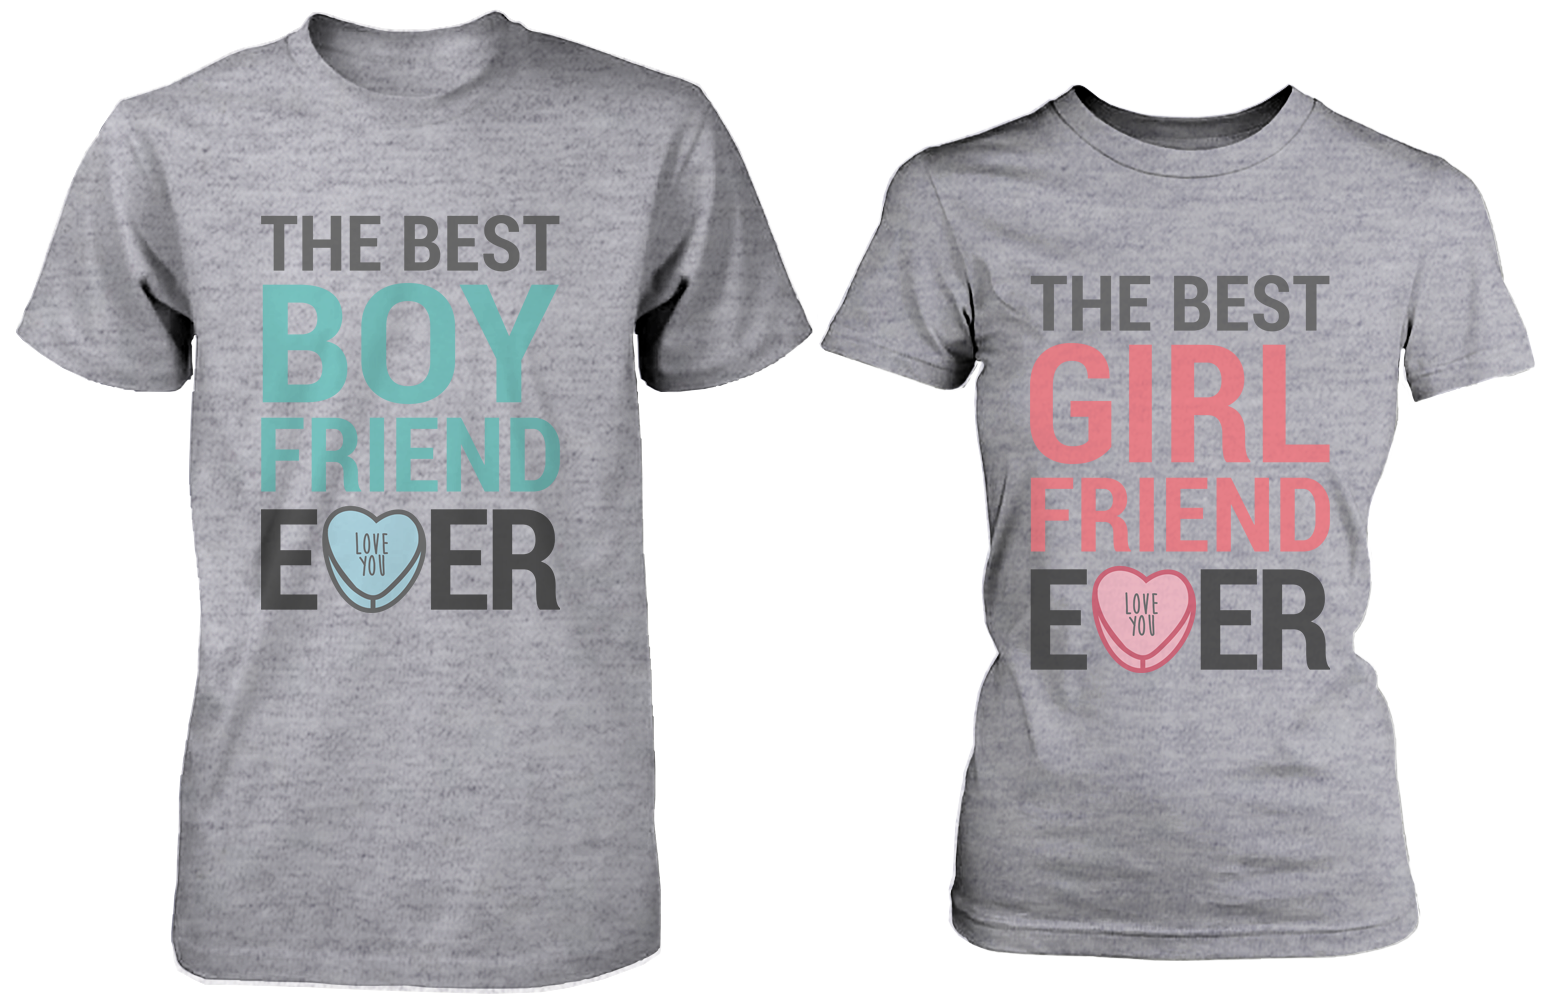 This Guy Has The Best Girlfriend Standard Unisex T-shirt Ever